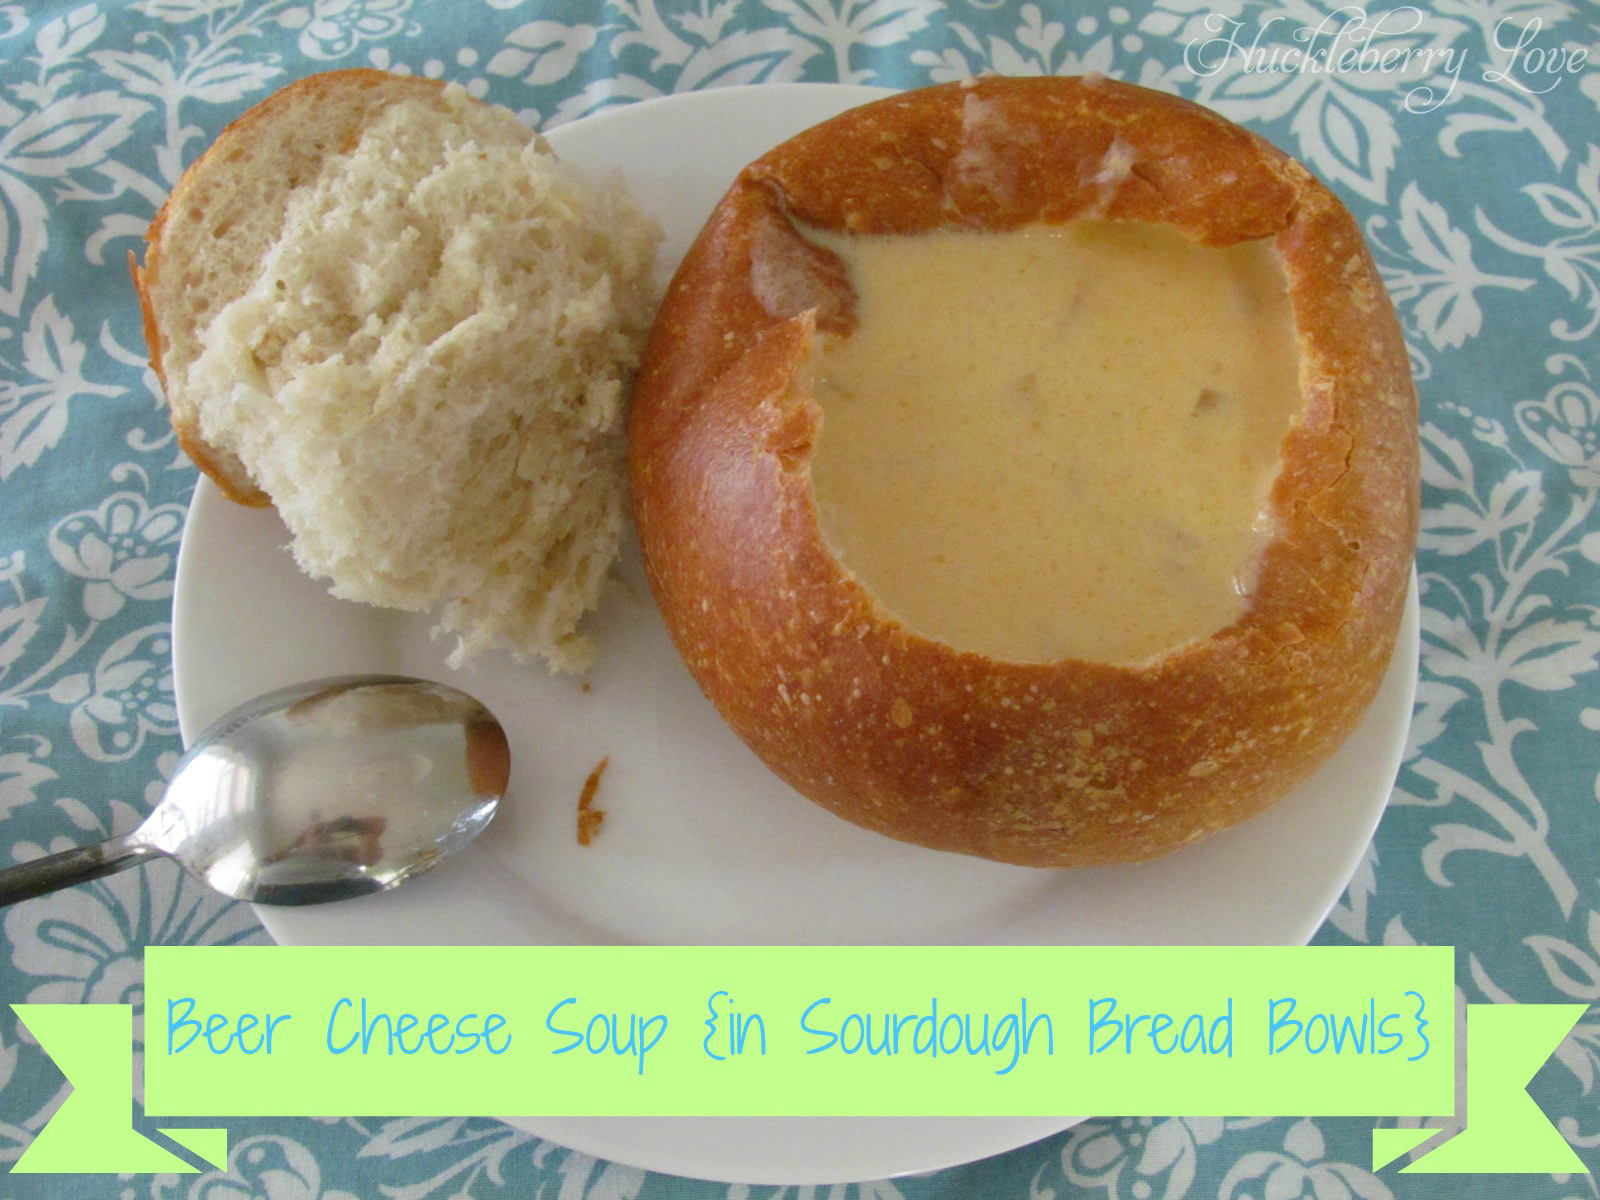 Beer Cheese Soup {in Sourdough Bread Bowls}